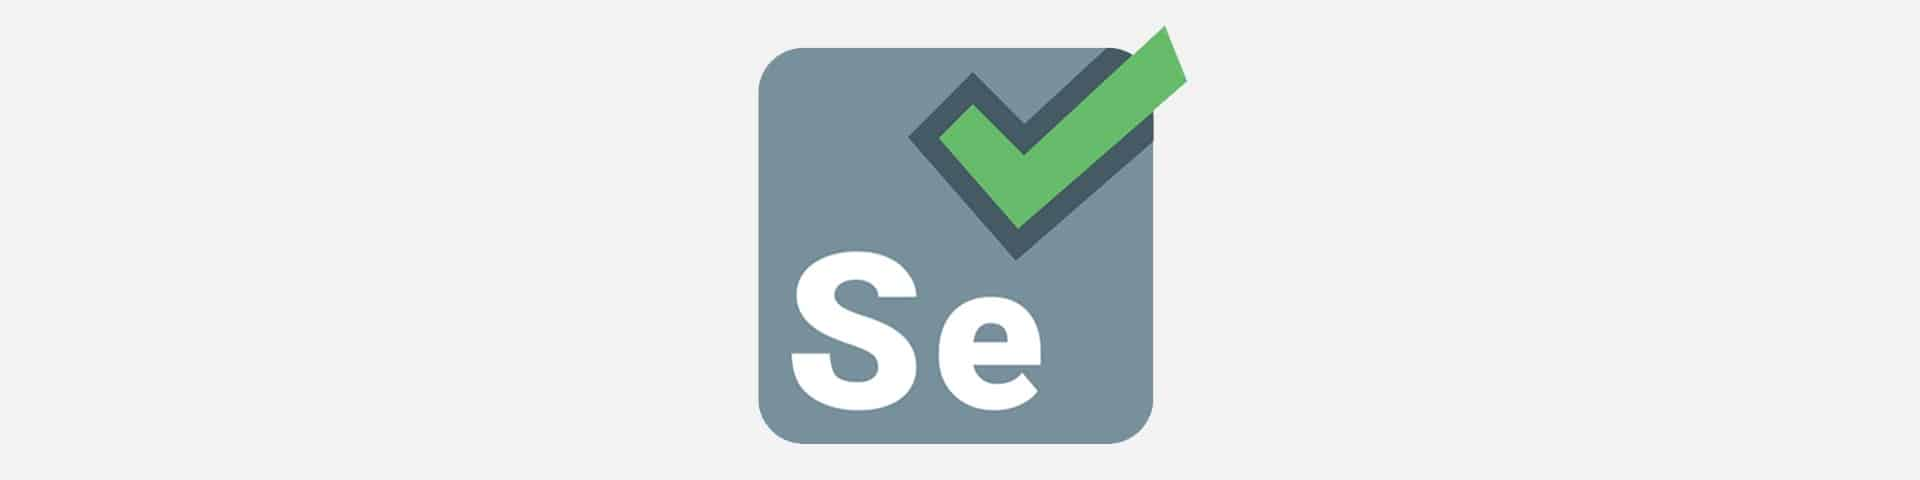 Selenium Interview Questions and Answers   Top 220 Selenium